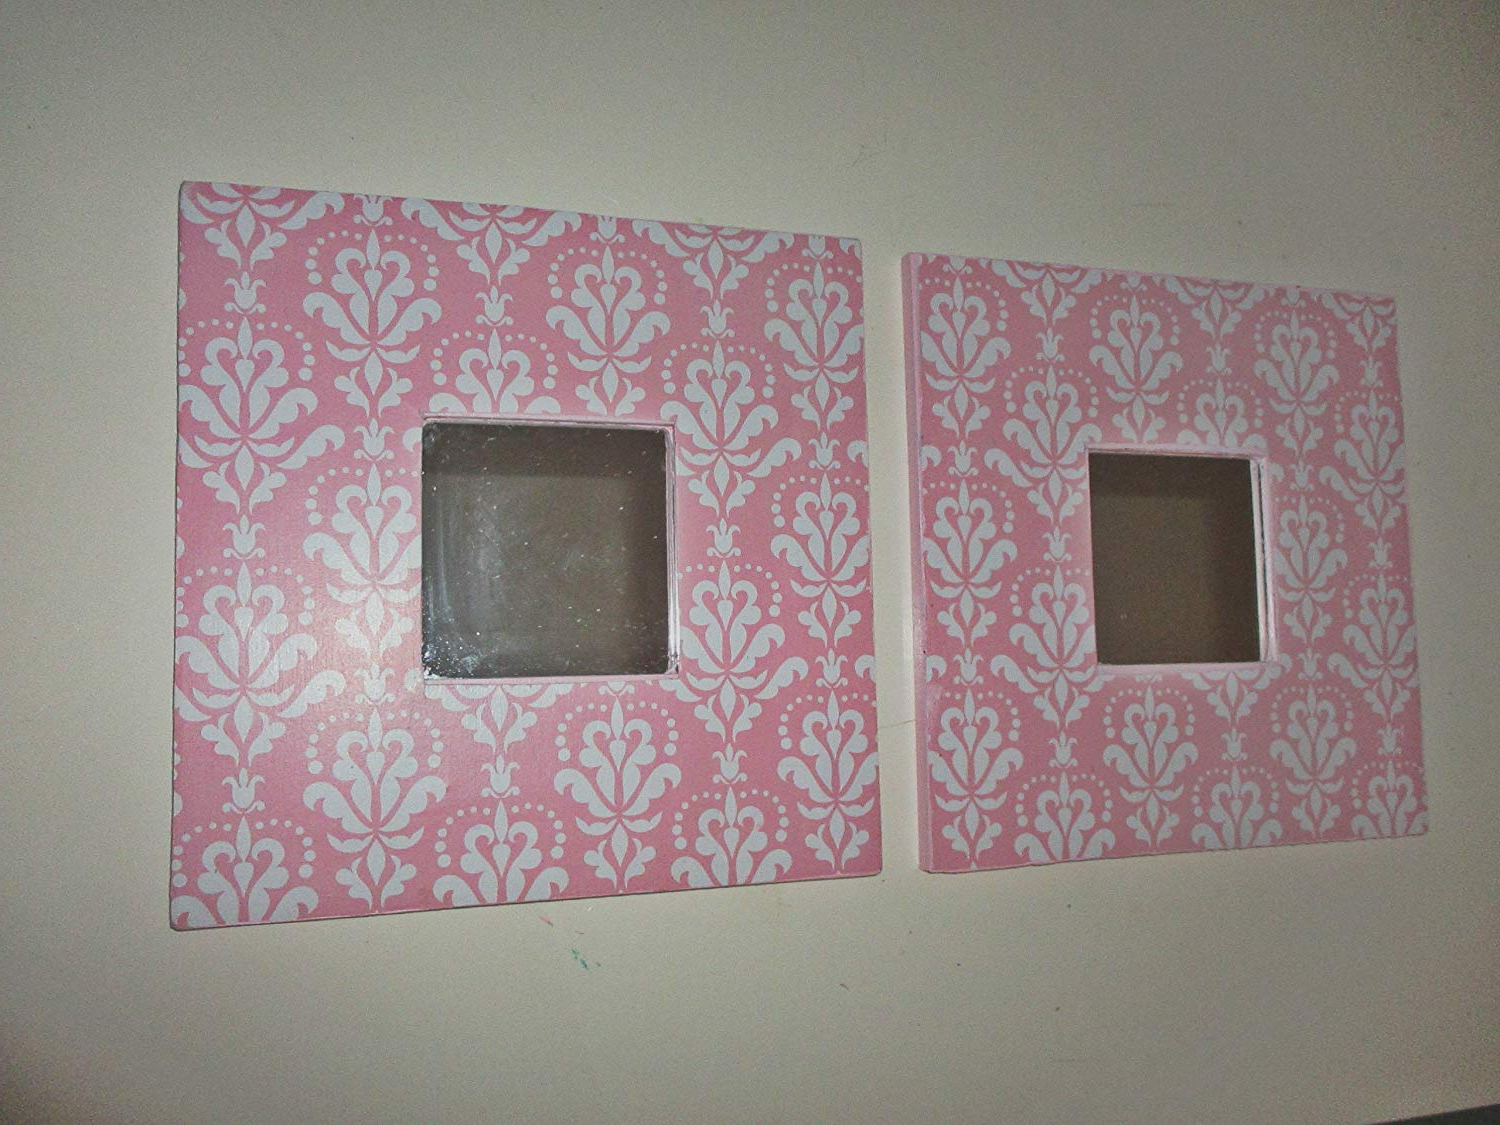 Nursery Wall Mirrors Regarding Well Liked Amazon: Small Wall Mirrors, Nursery Room, Childrens Room (View 7 of 20)